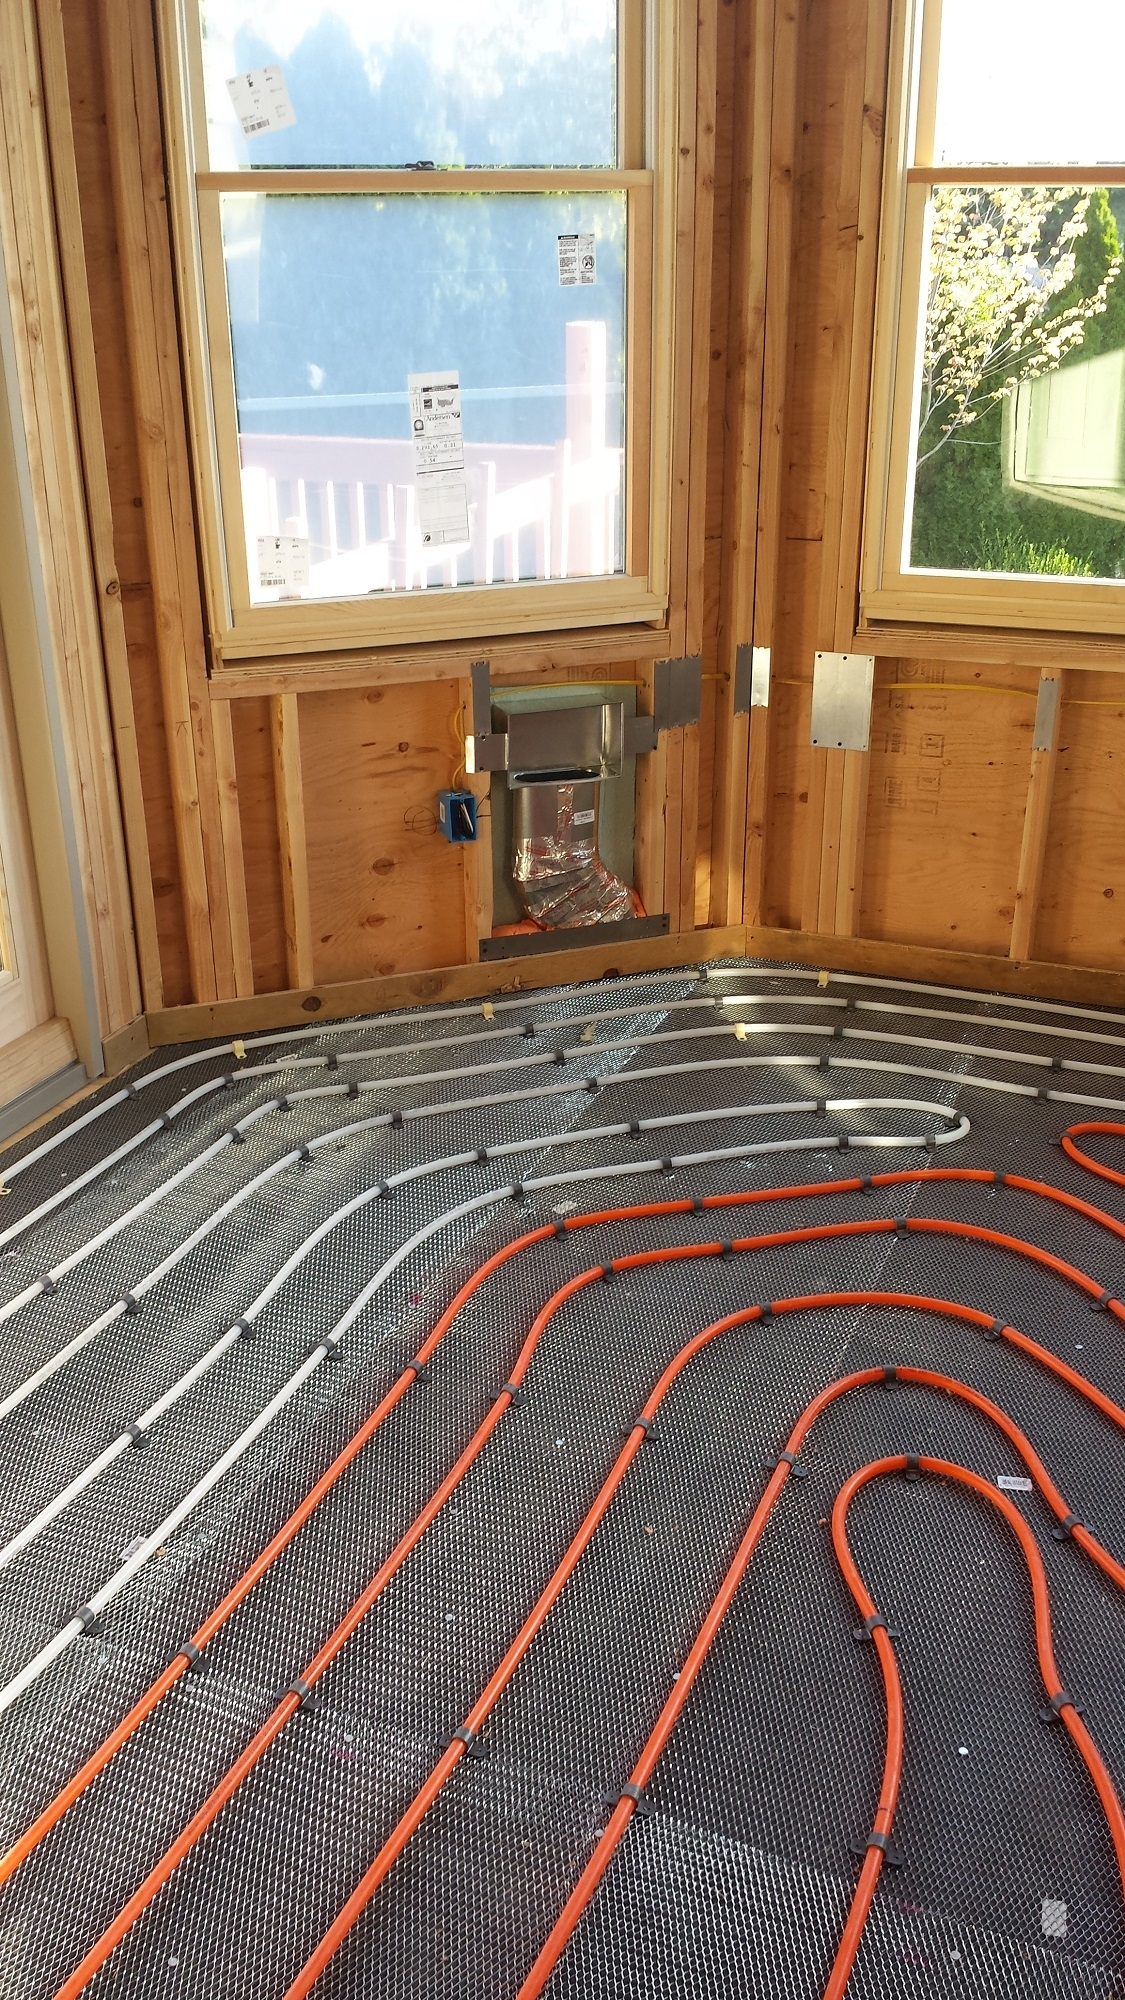 how to grow a plumbing and heating business